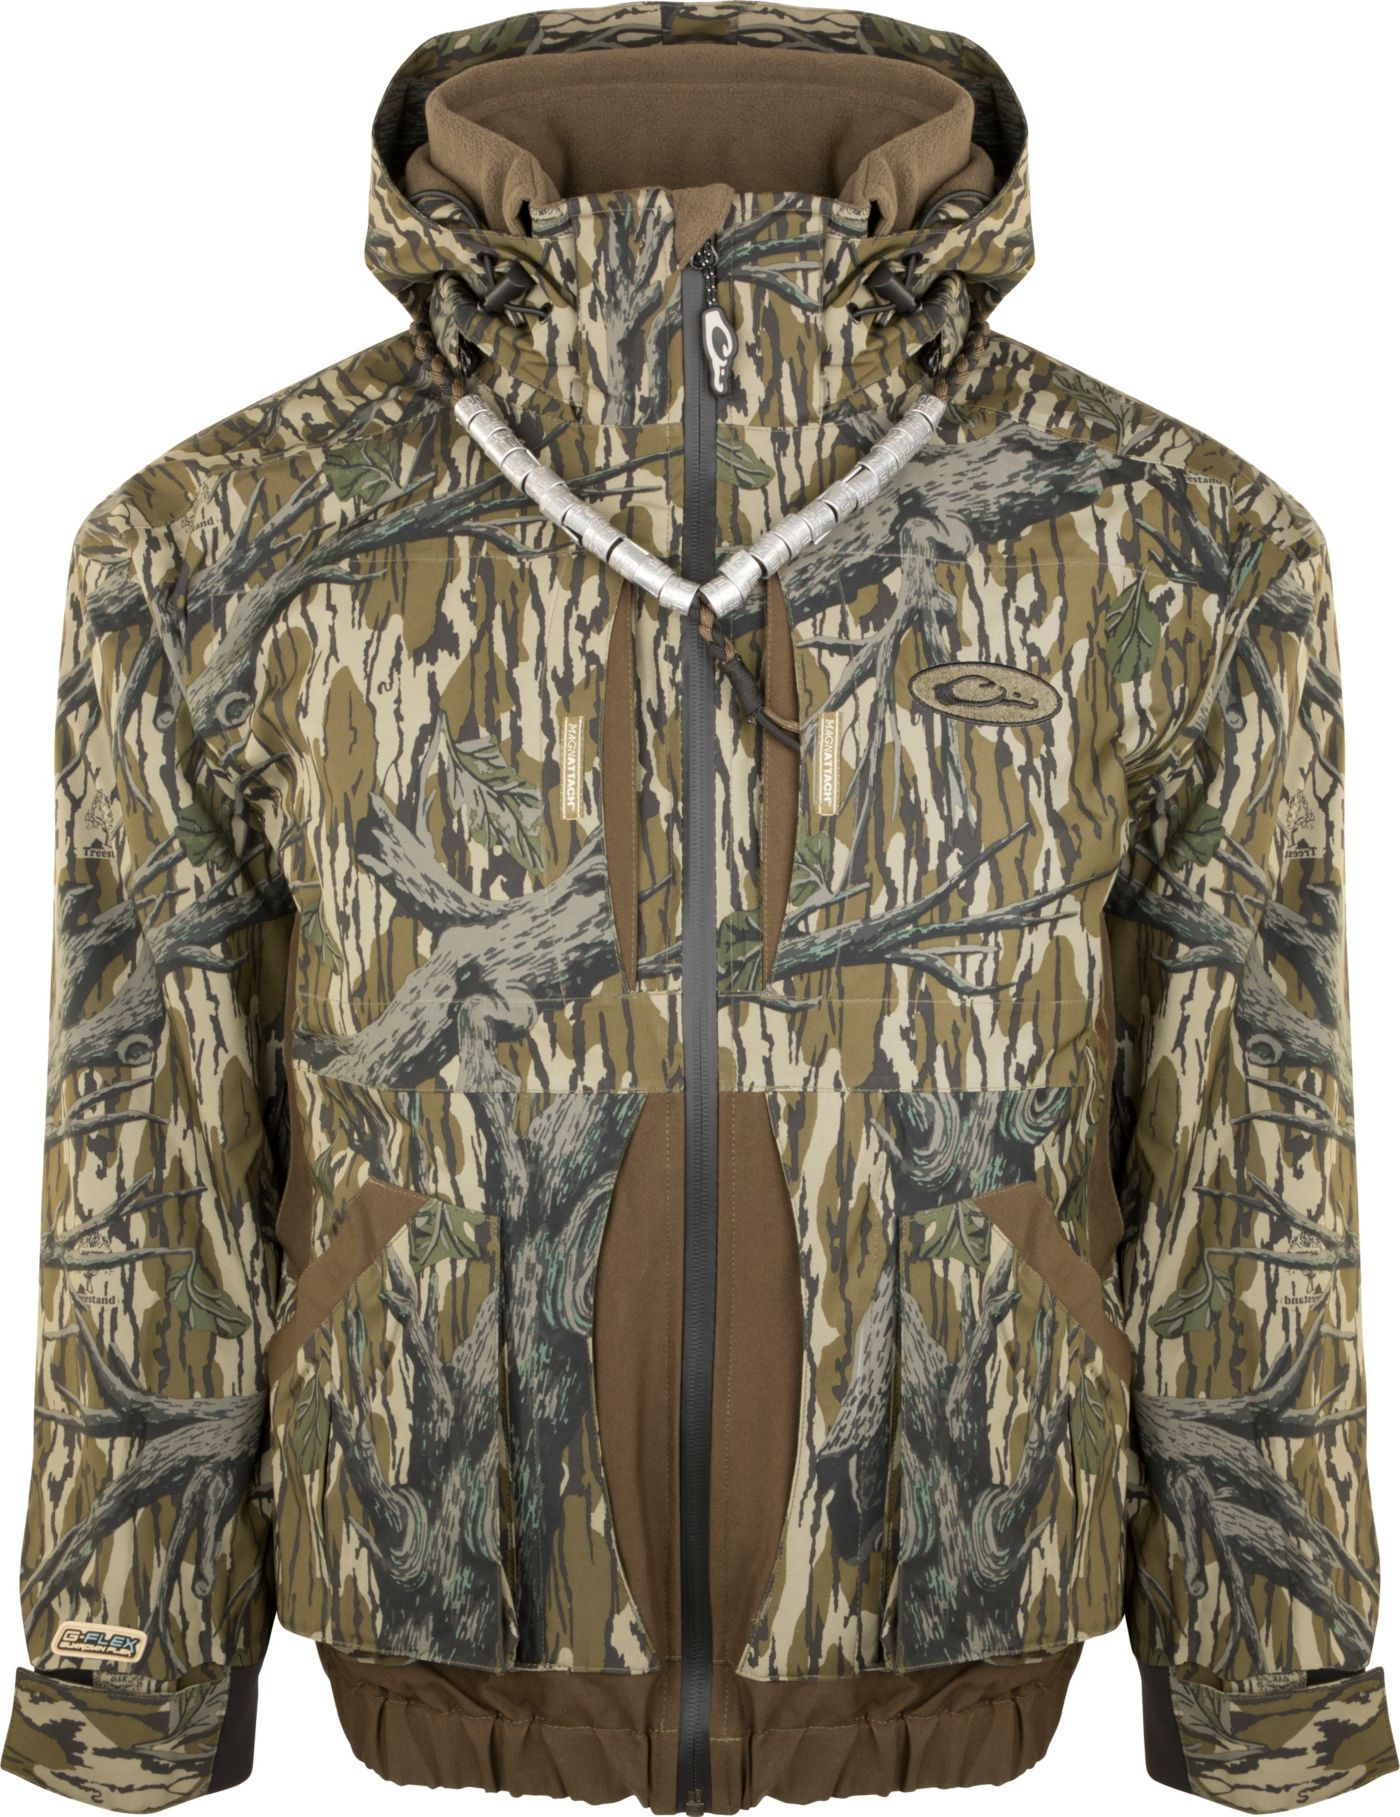 Drake Waterfowl Men's Guardian Flex 3-in-1 Systems Hunting Coat